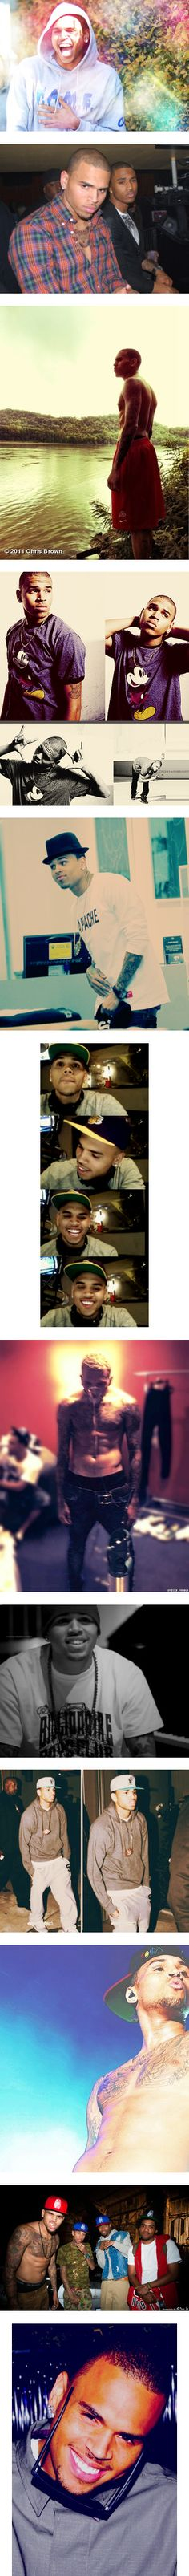 """Chris Brown !"" by shannabanana2014 ❤ liked on Polyvore #TeamBreezy #TrapMusicDefinition http://www.slaughdaradio.com"